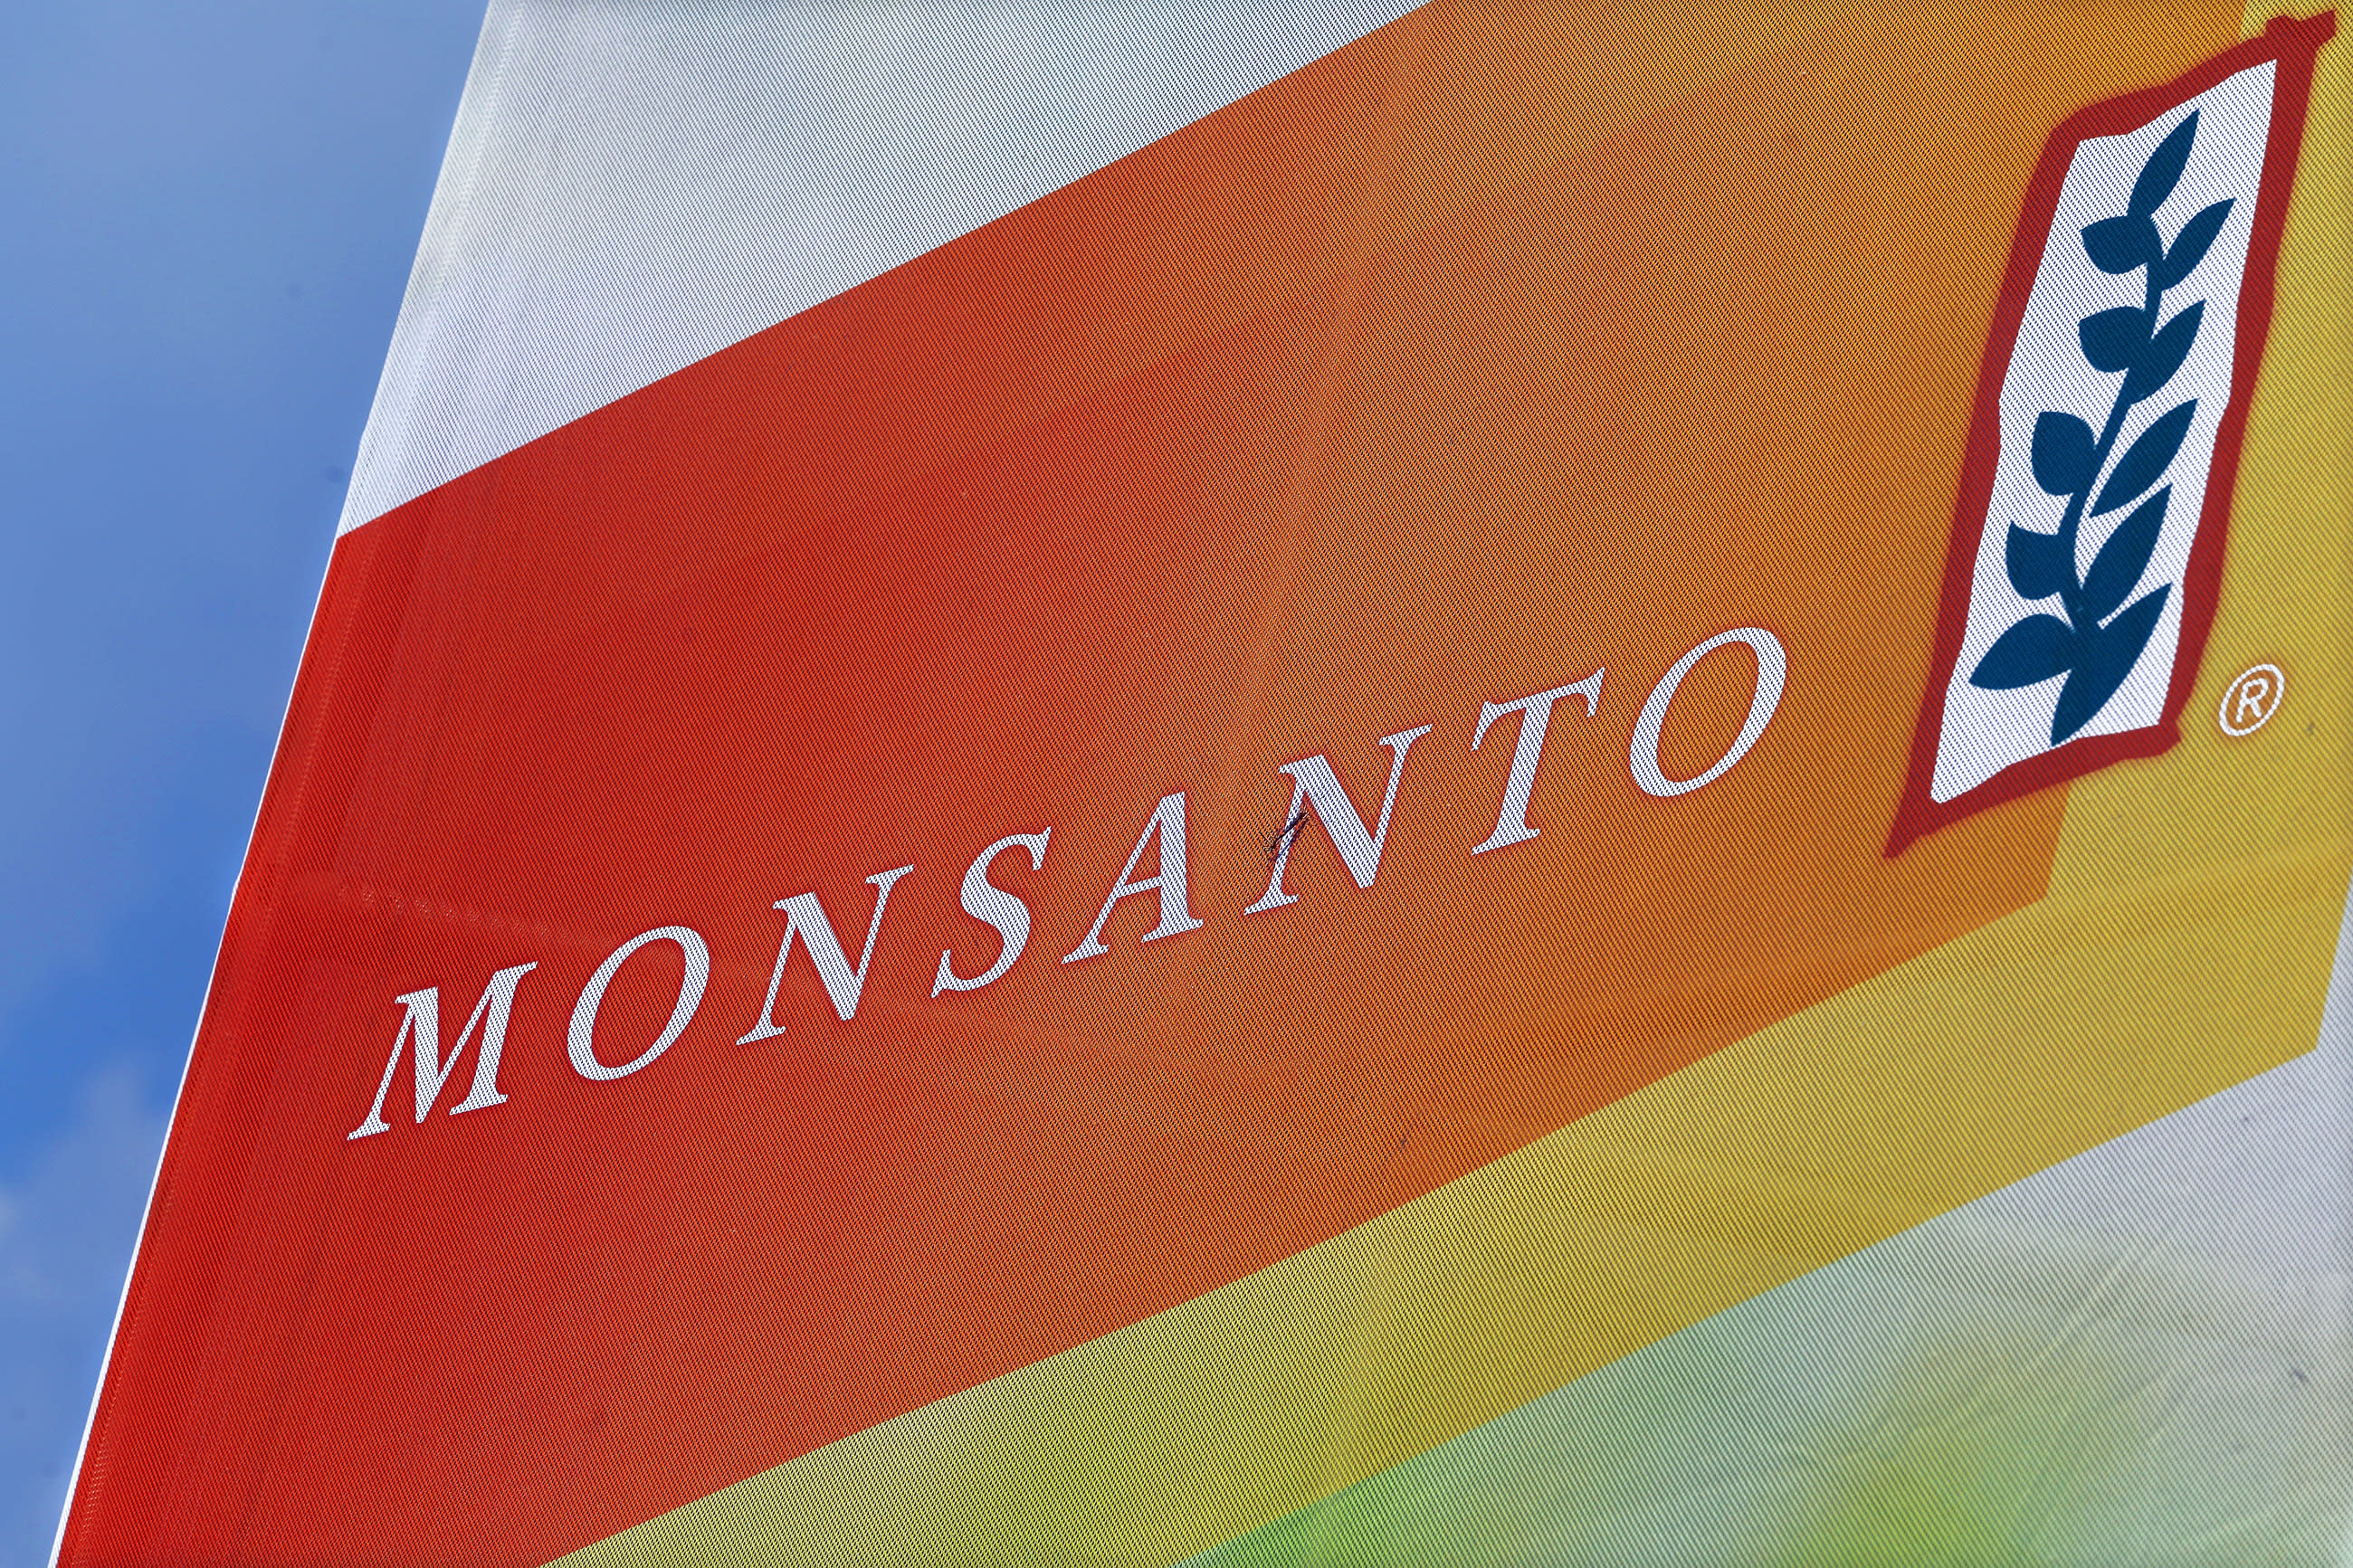 Monsanto to eliminate 2,600 jobs, posts 4Q loss